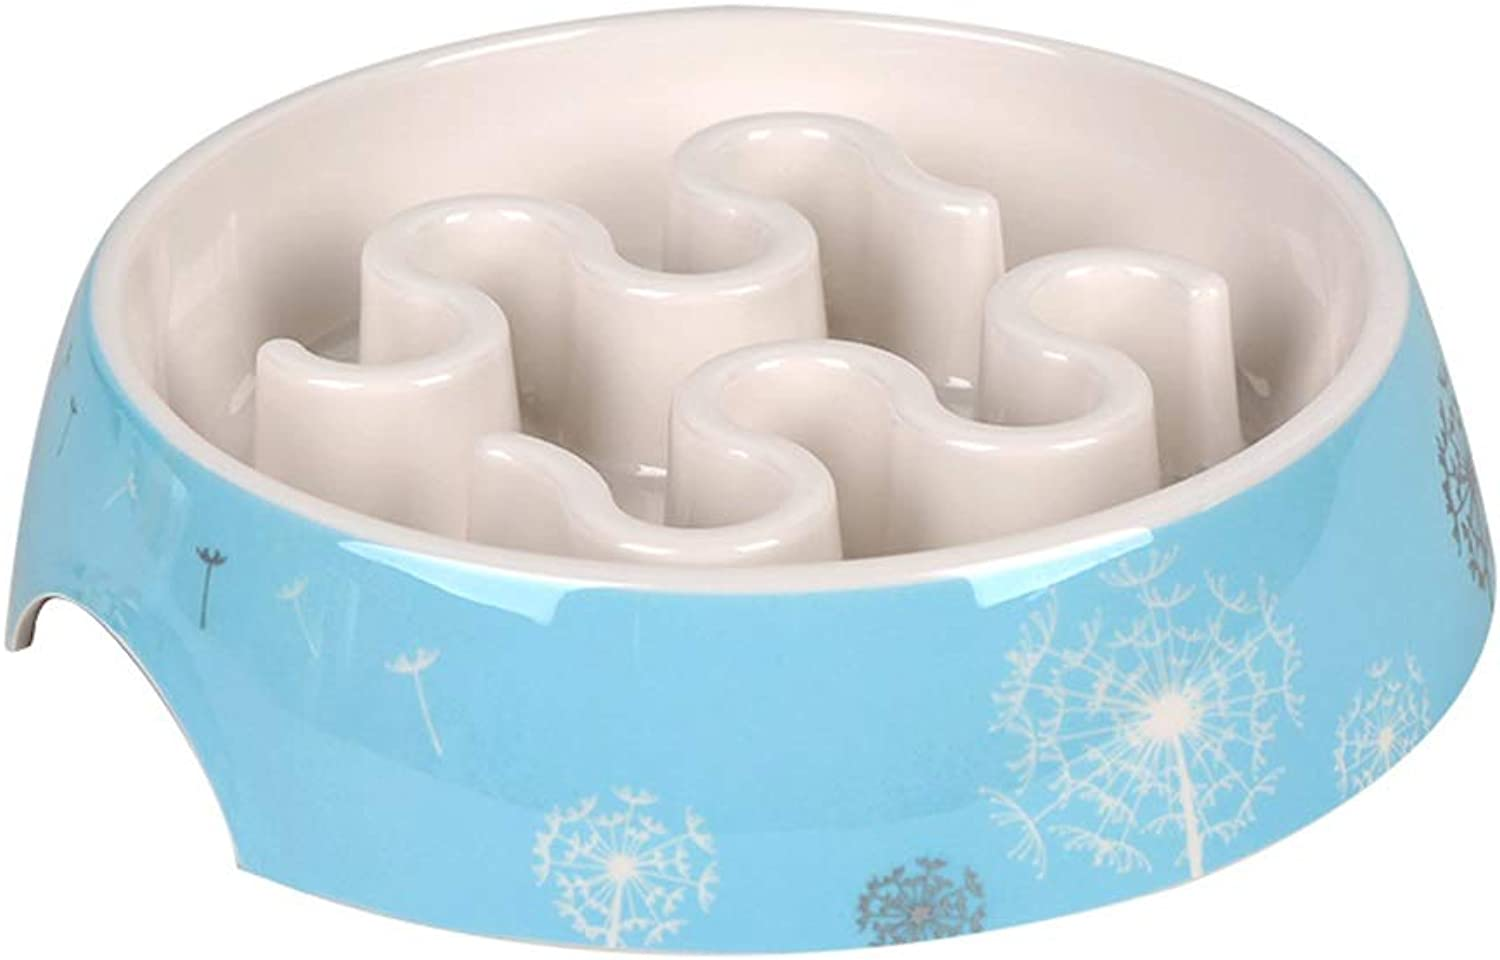 AntiGulping Dog Bowl Slow Feeder,Porcelain Pet Bowl,Feeding Stations,for Dogs Cats and Pets,Interactive Bloat Stop Pet Bowl for Fast Eaters (color   C)